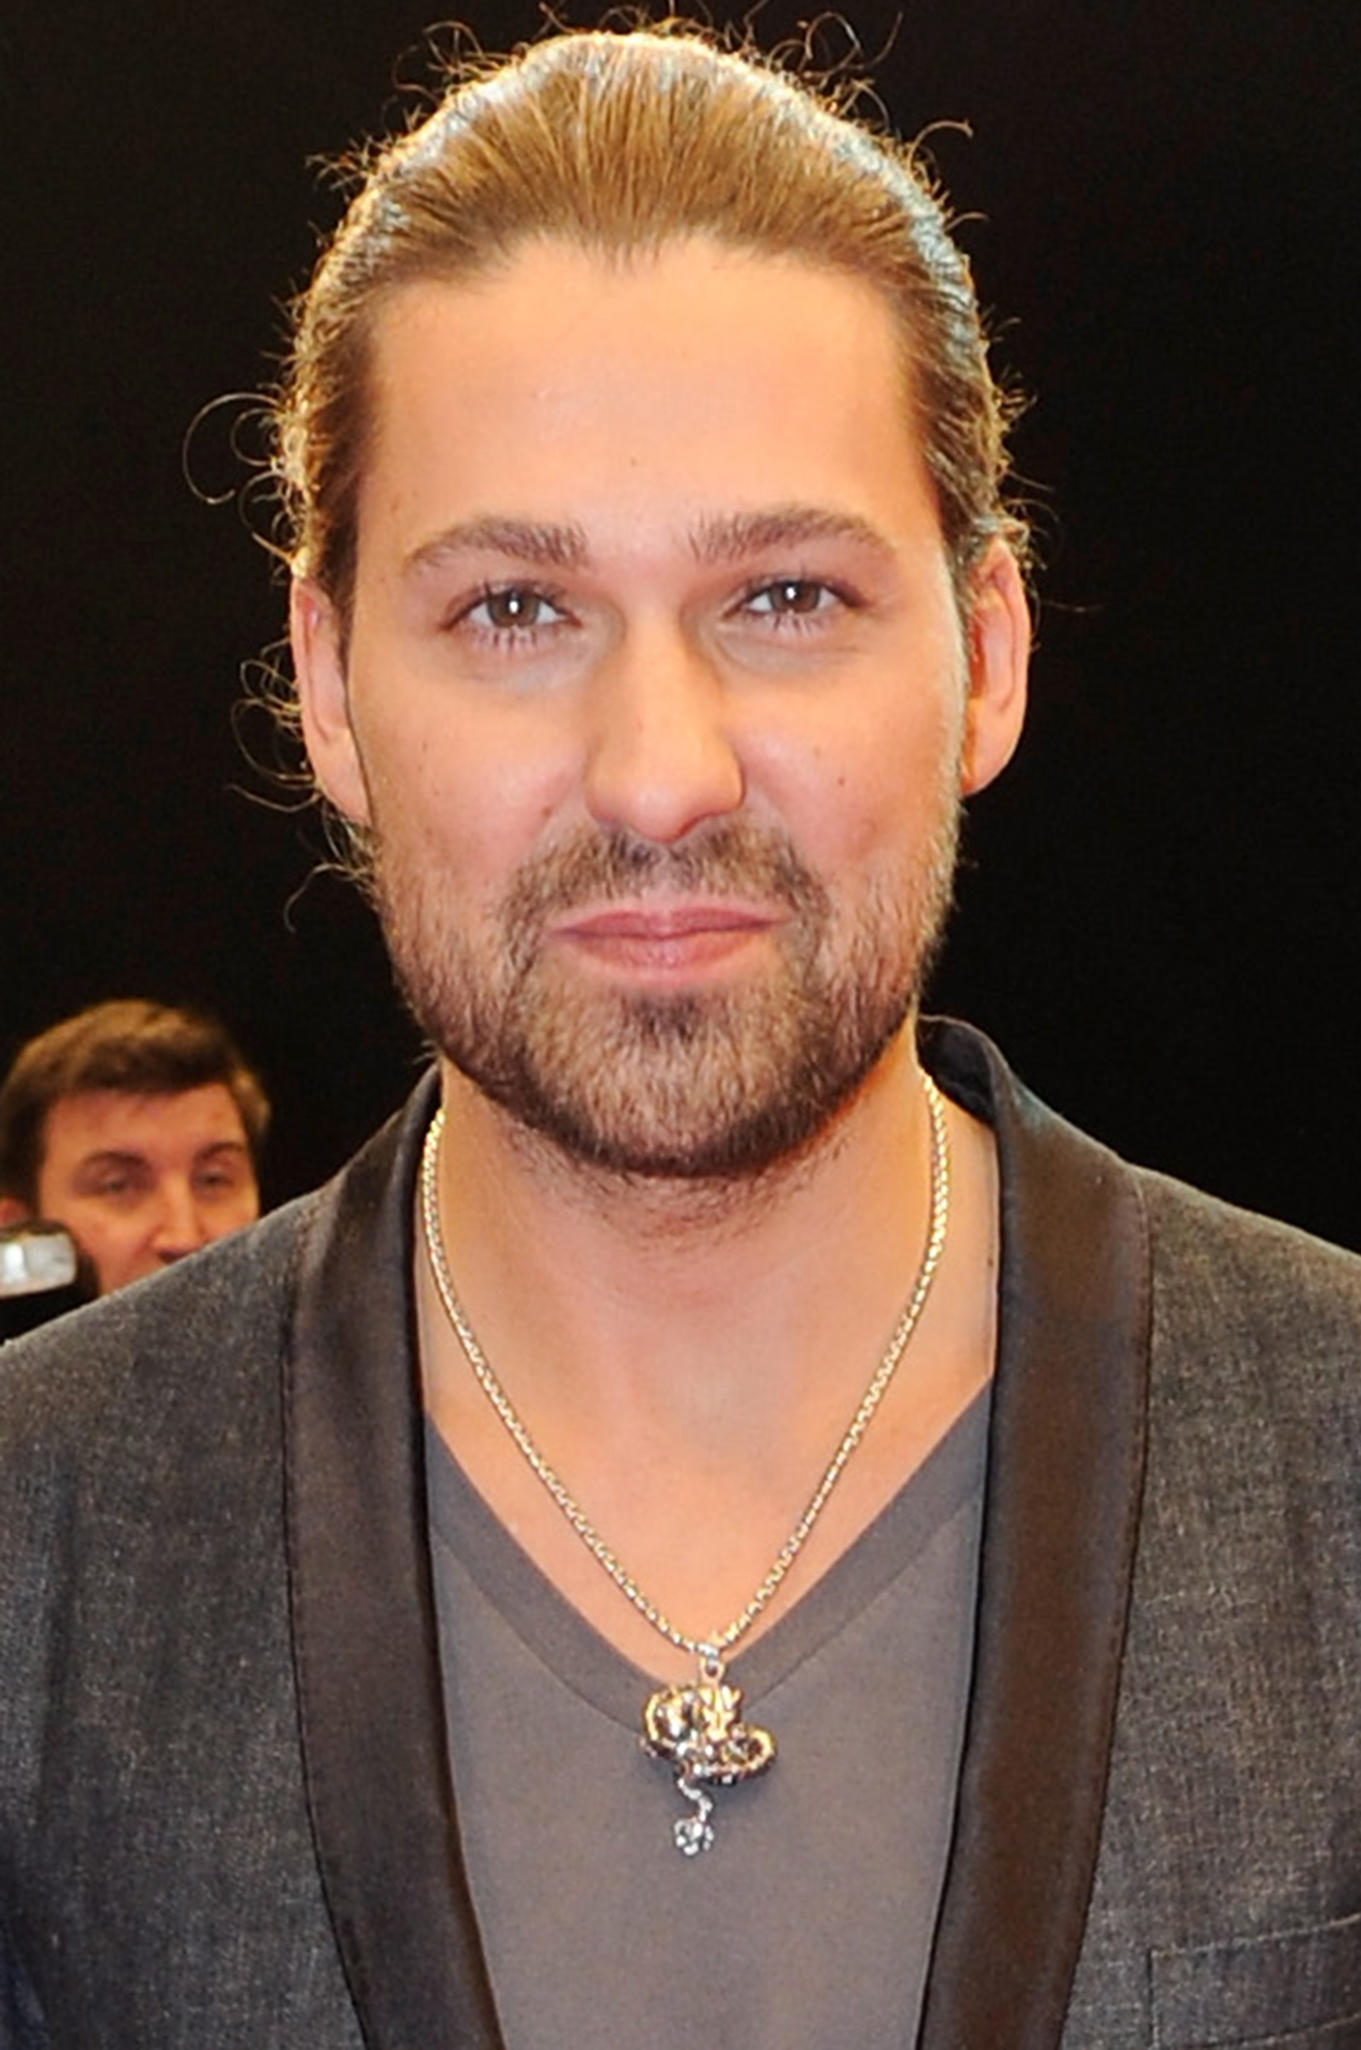 David Garrett at the 2013 GQ Men Of The Year Awards.